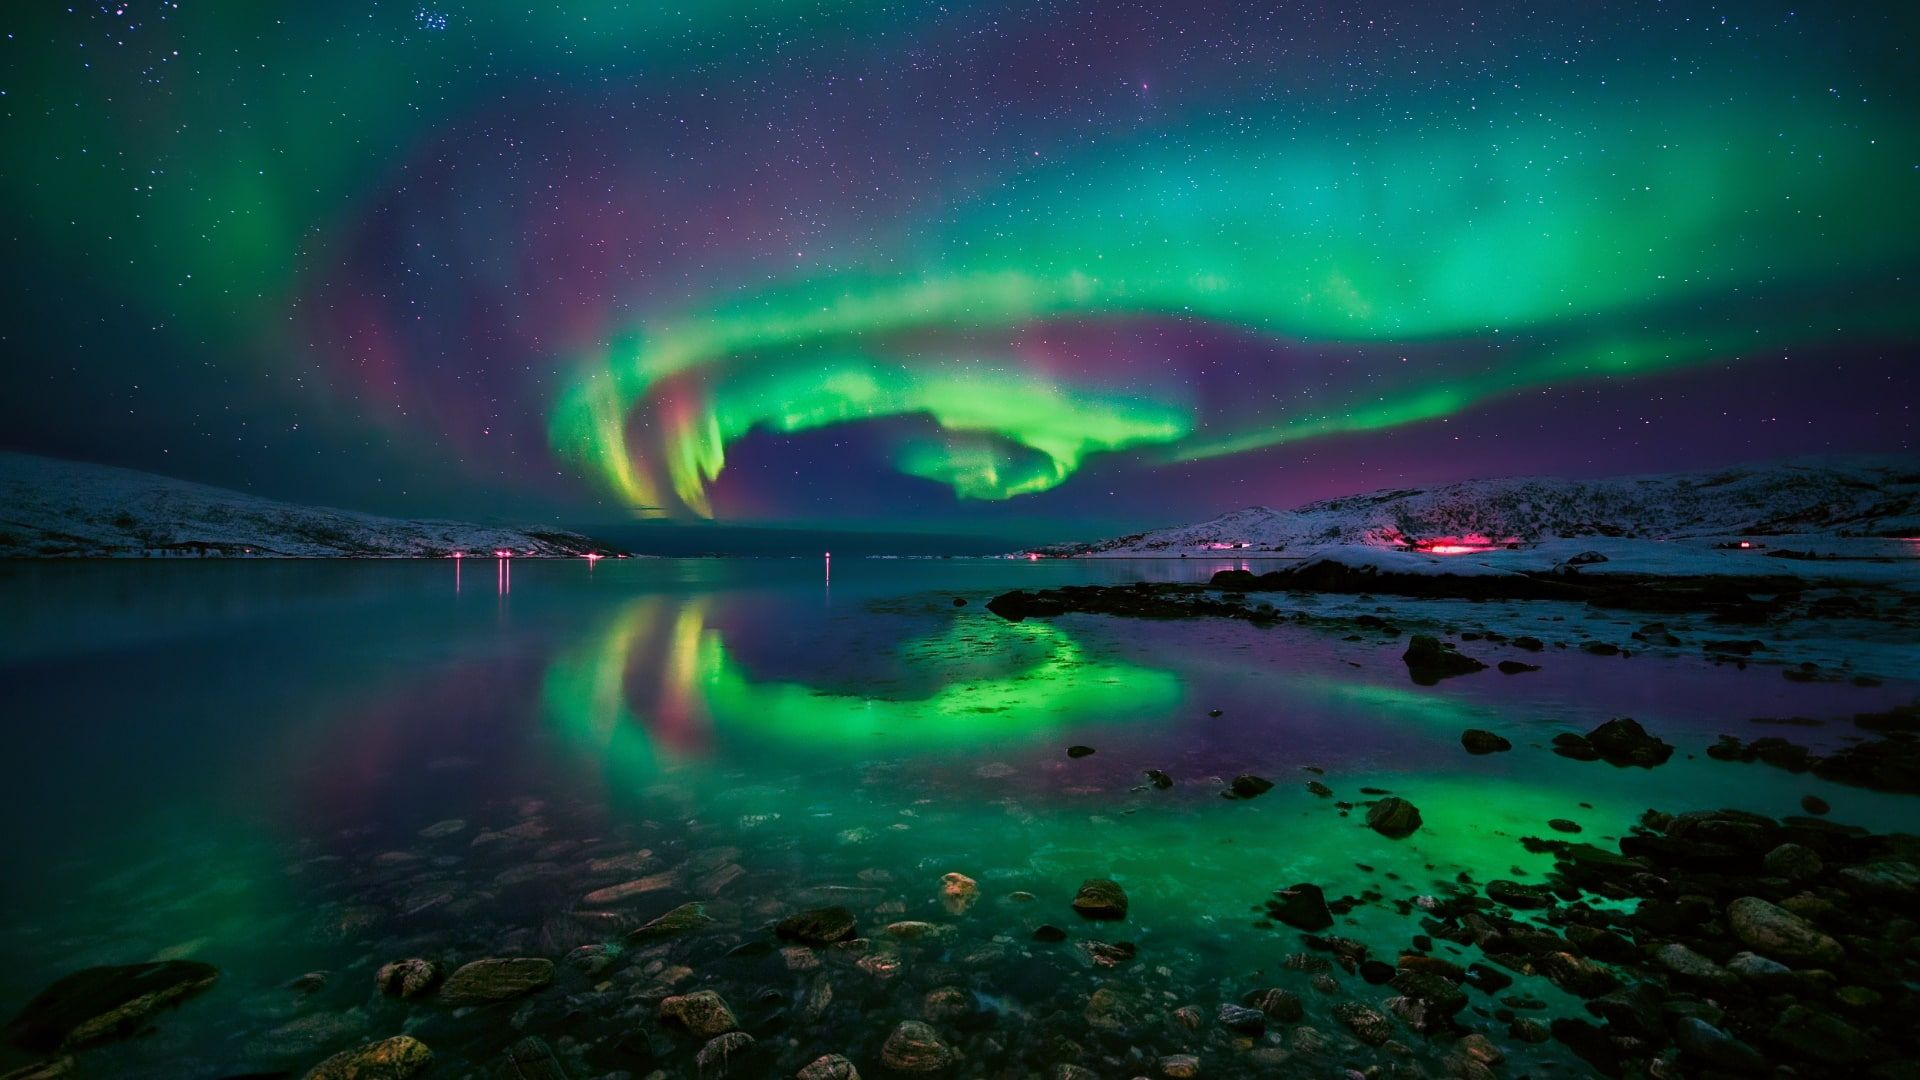 Night Sky Aurora Borealis Starry Night Northern Lights Polar Lights Europe Tromso Norway 1080p Wallpaper Hdwa In 2020 Northern Lights Aurora Borealis Night Skies